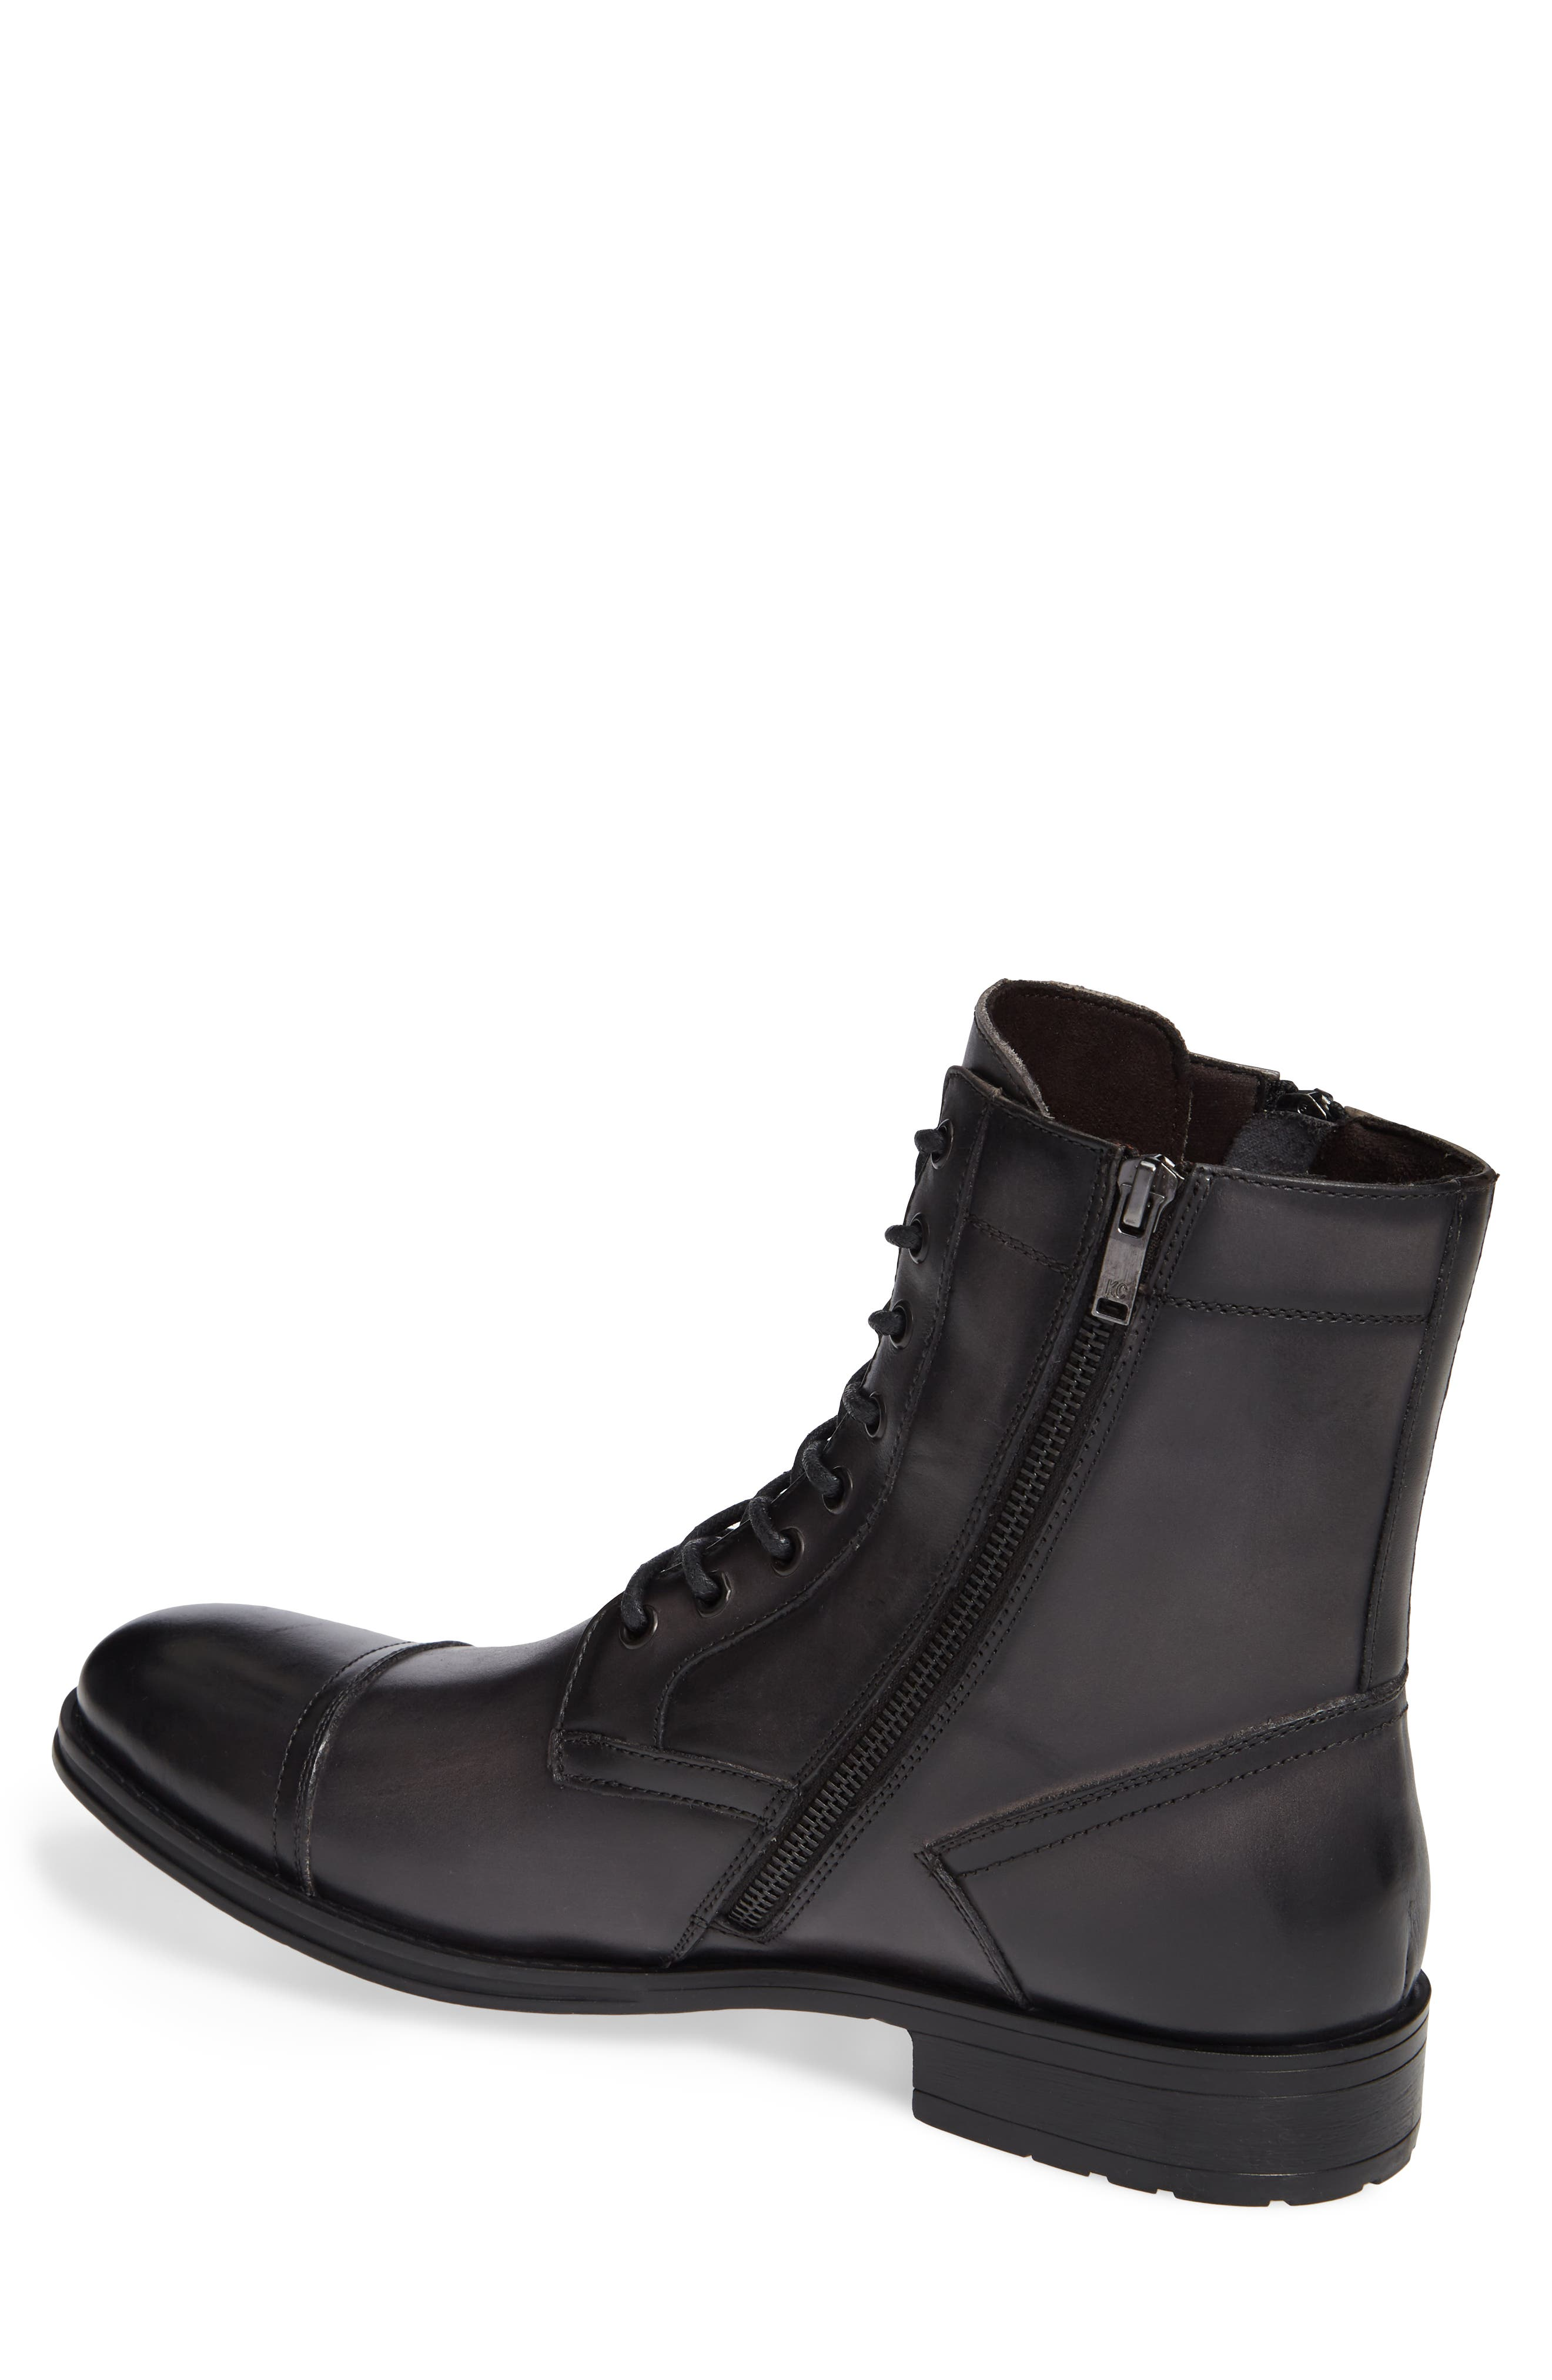 Hugh Cap Toe Boot,                             Alternate thumbnail 2, color,                             GREY LEATHER